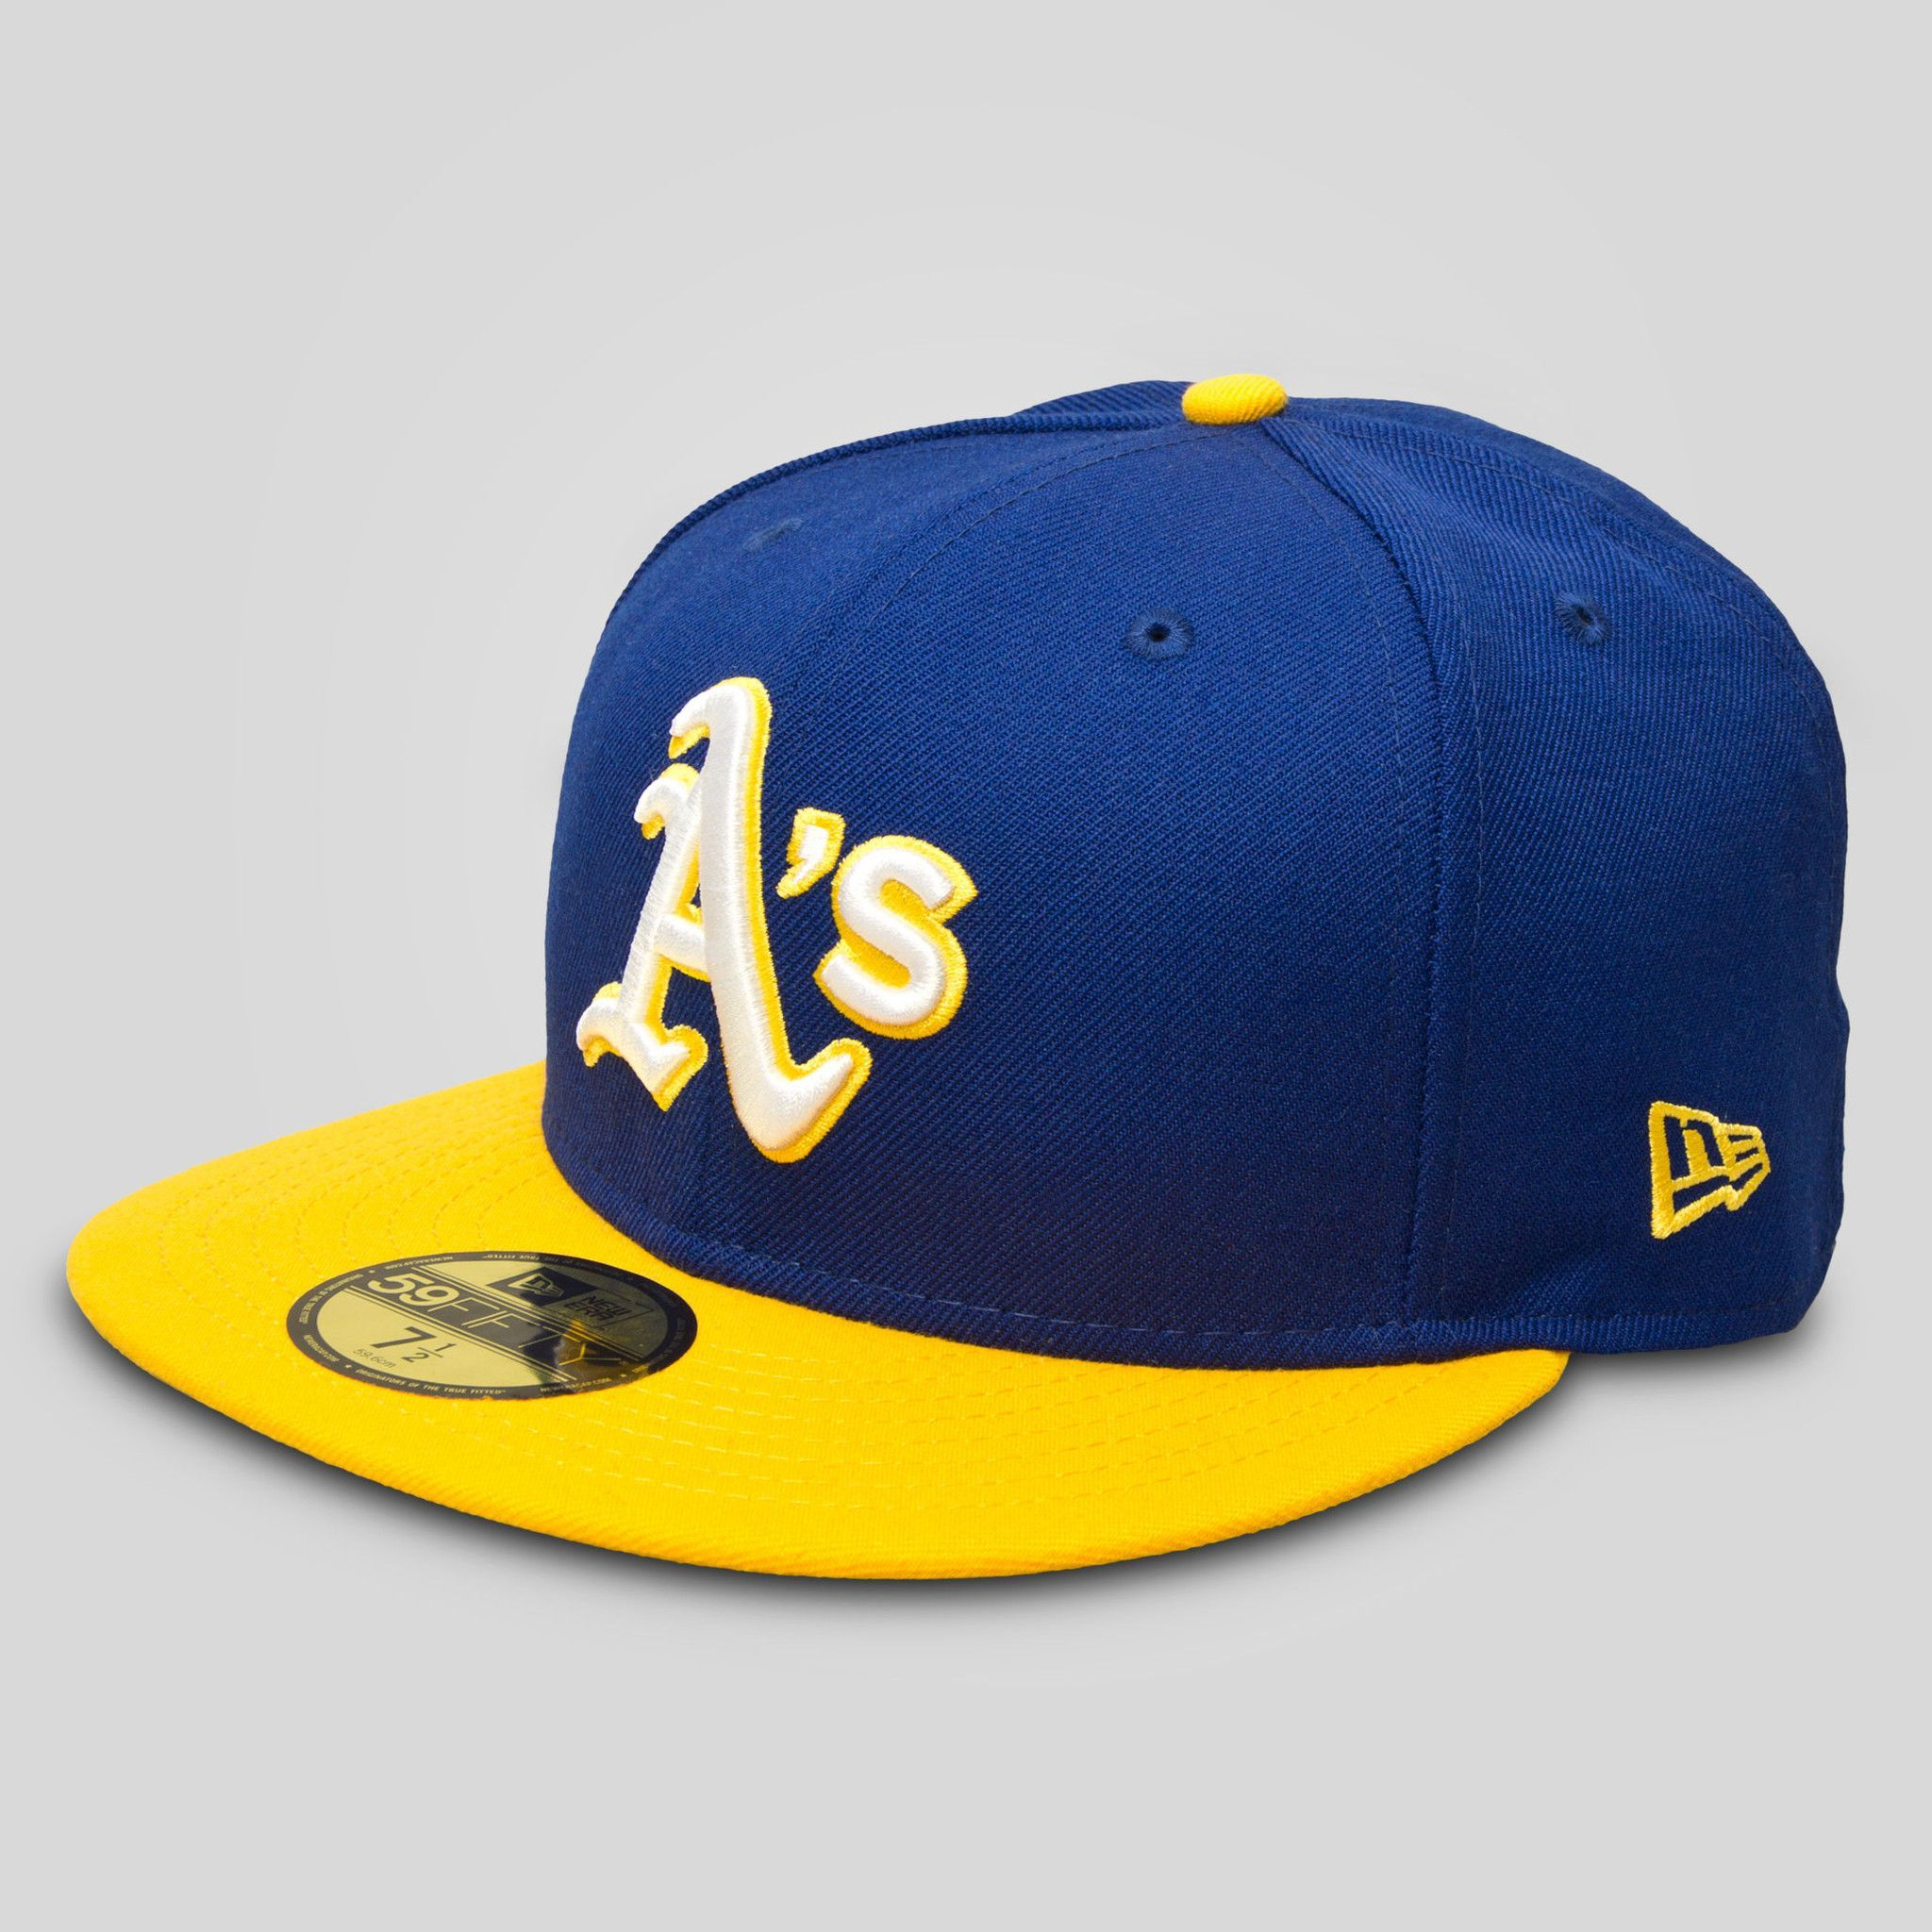 cheaper 6a330 579b9 Oakland A s New Era Fitted Cap in Royal   Gold